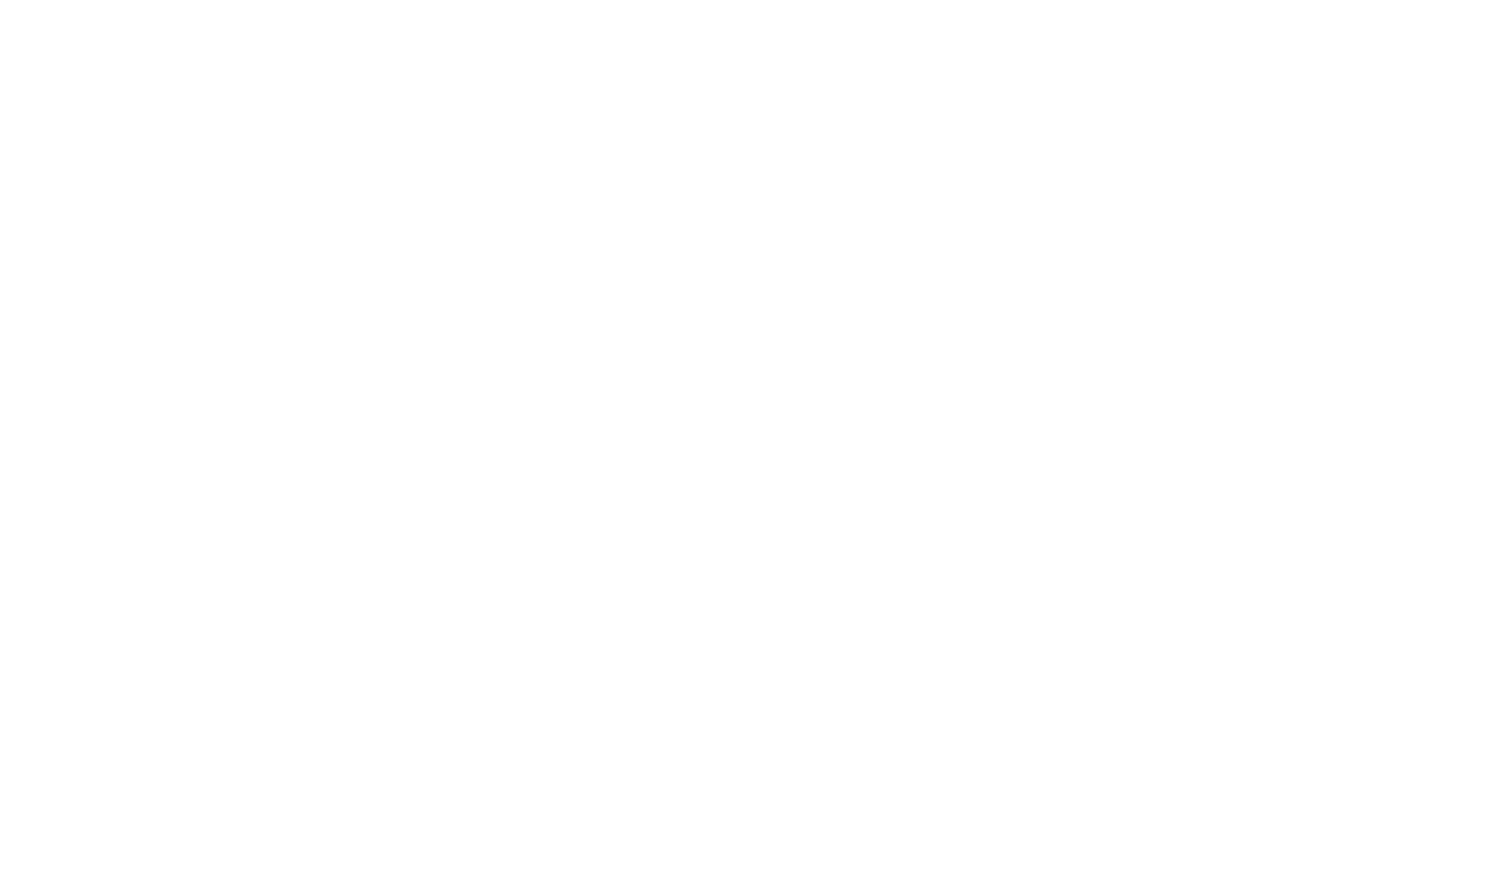 VACATION MANOR